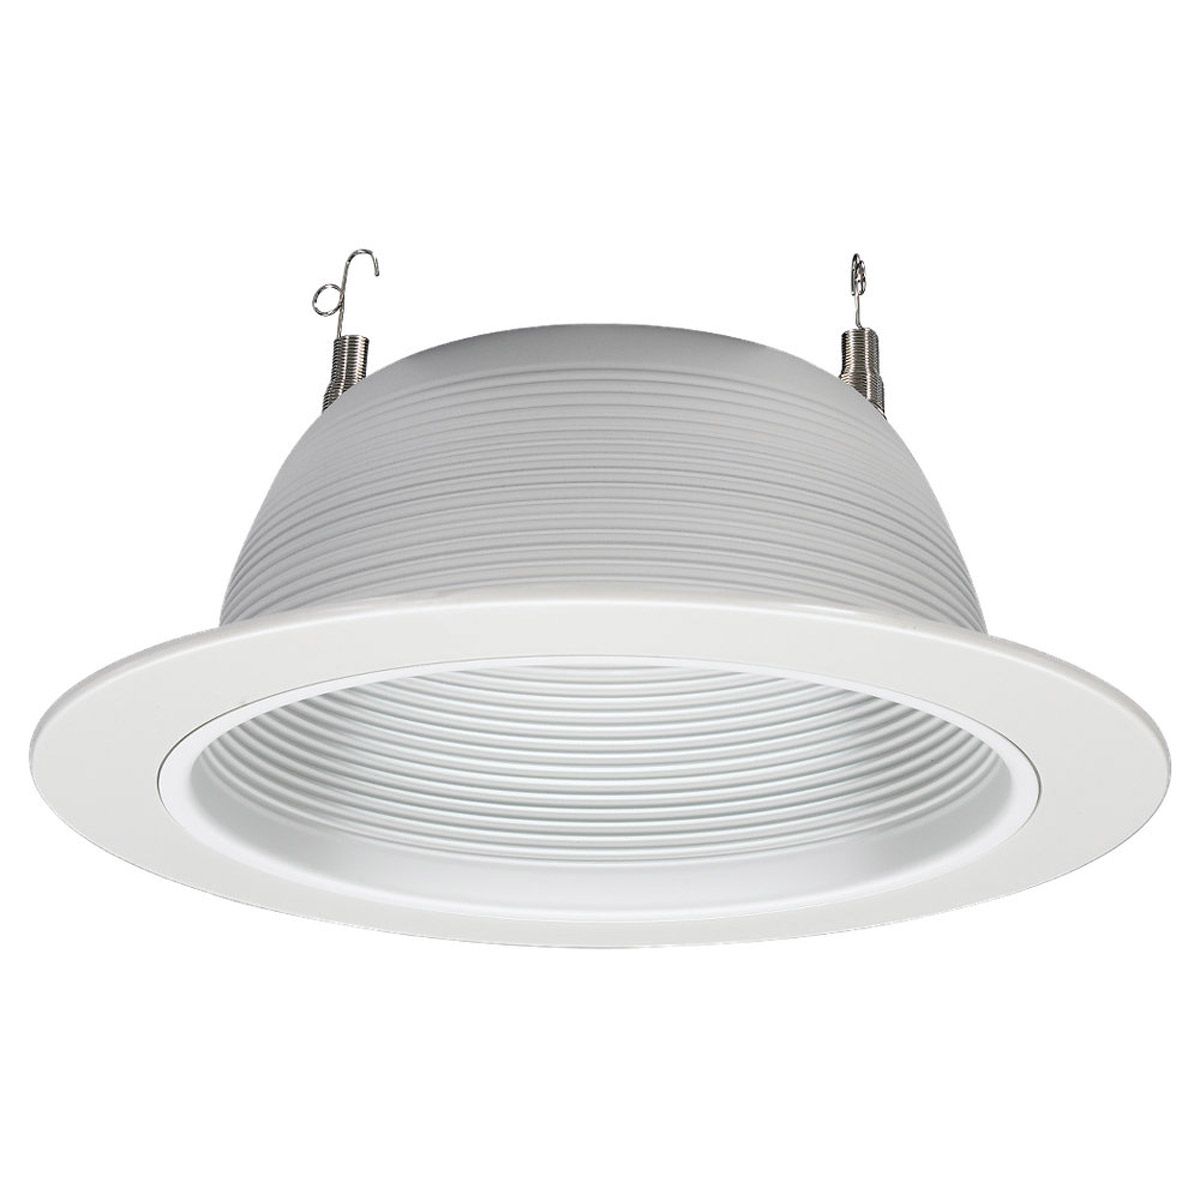 Sea Gull Lighting Signature Recessed Trim Only in White 1126-14 photo